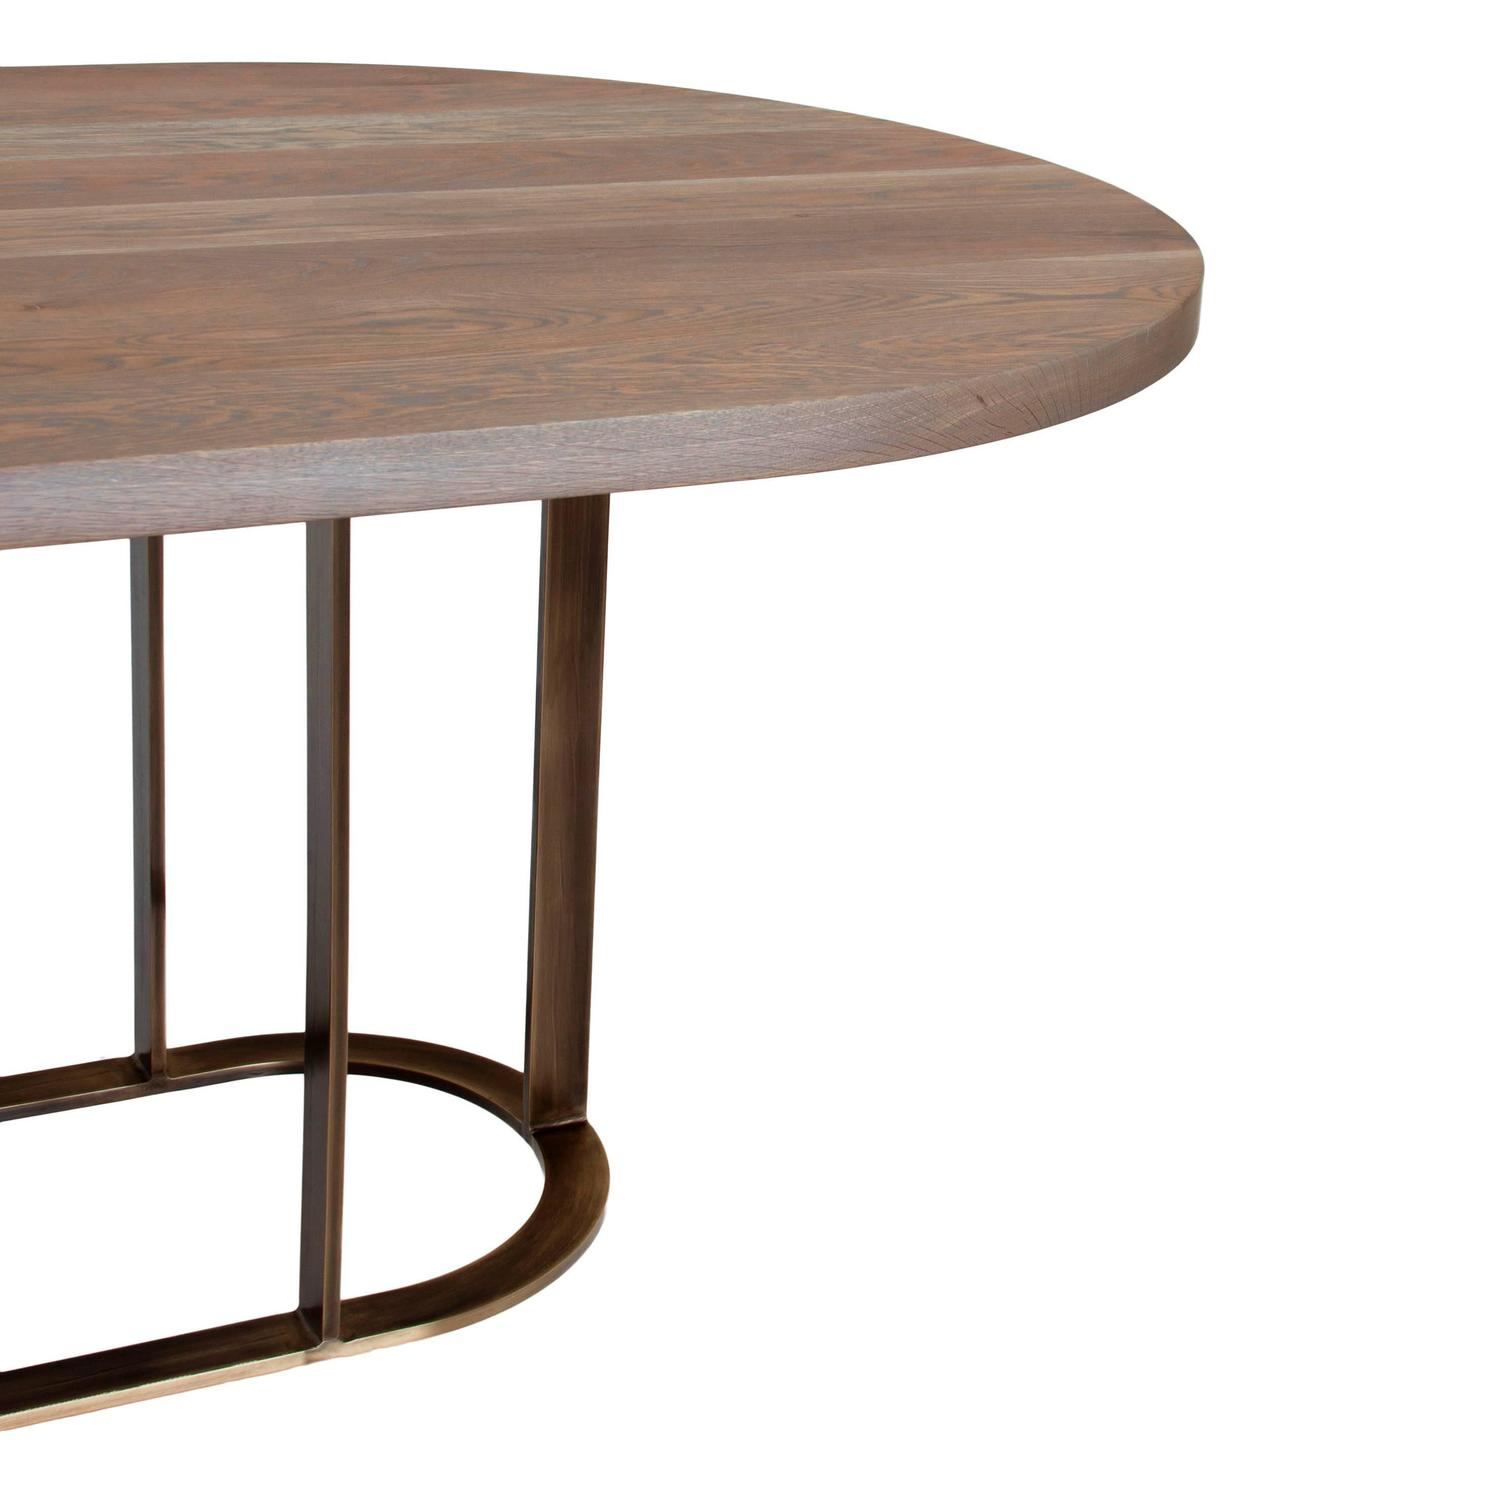 Coyler Dining Table with Solid Bronze Base by Thomas Hayes  : 3z from www.1stdibs.com size 1500 x 1500 jpeg 78kB